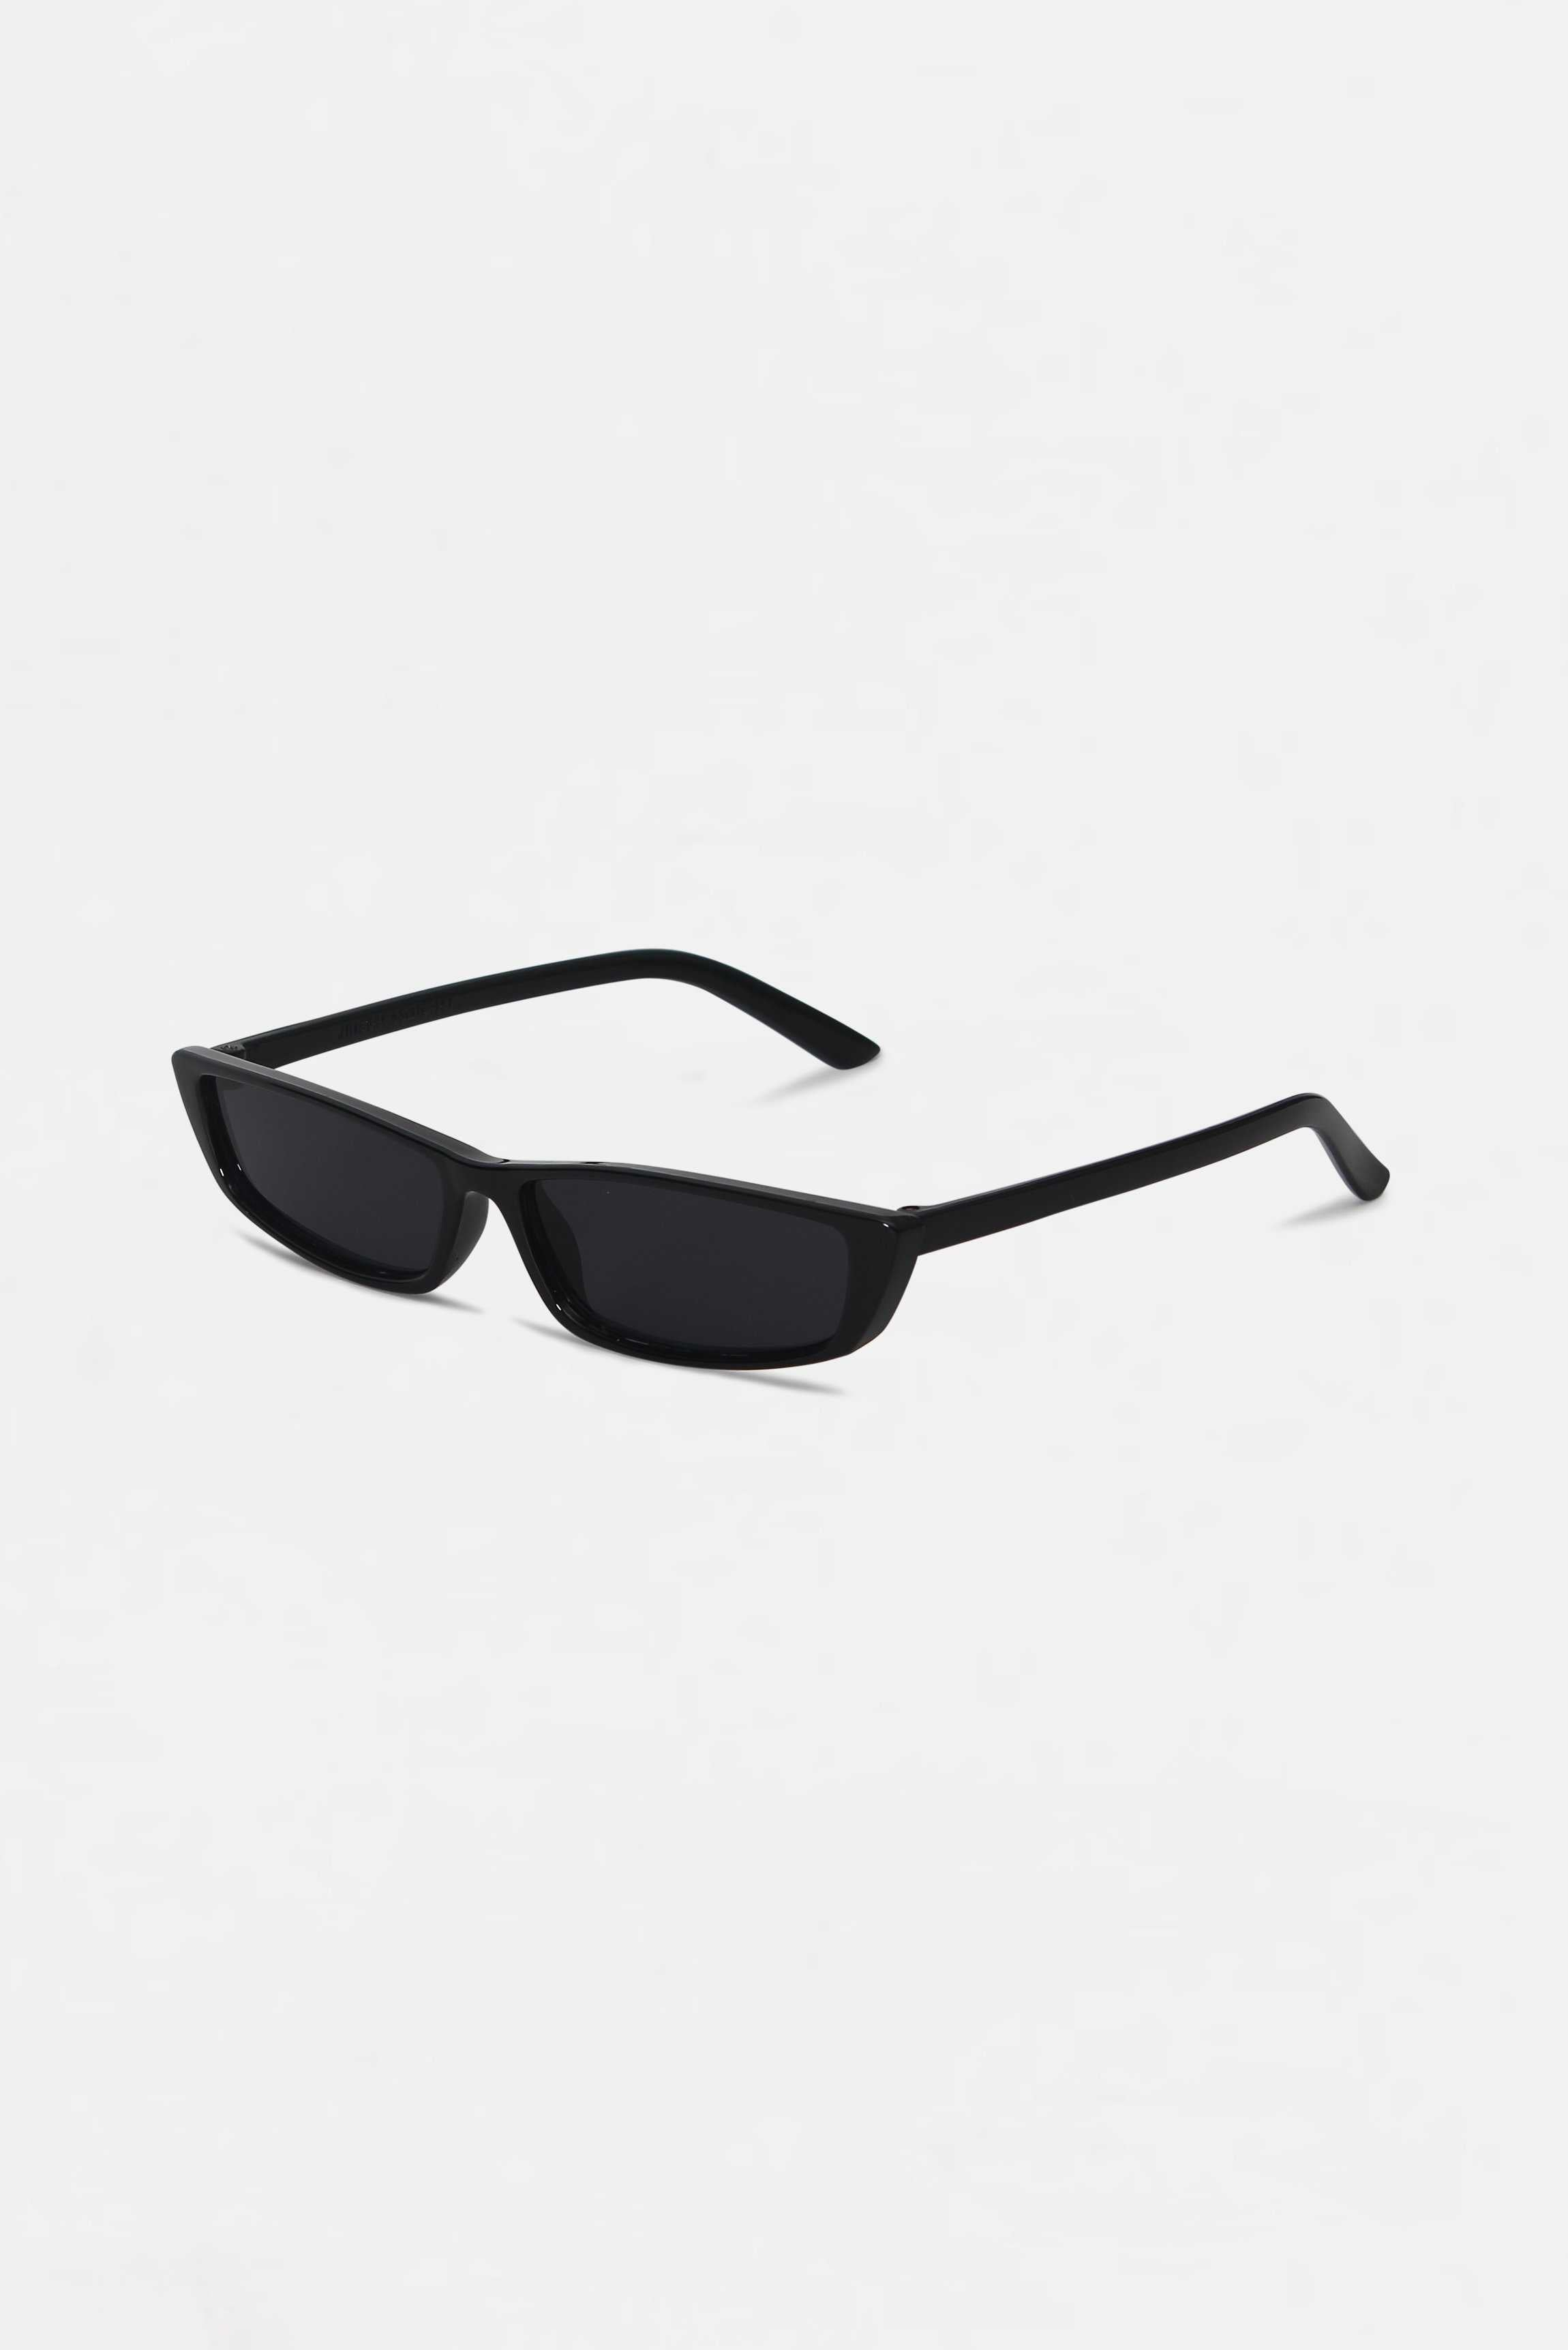 Retro Black Square Frame Sunglasses